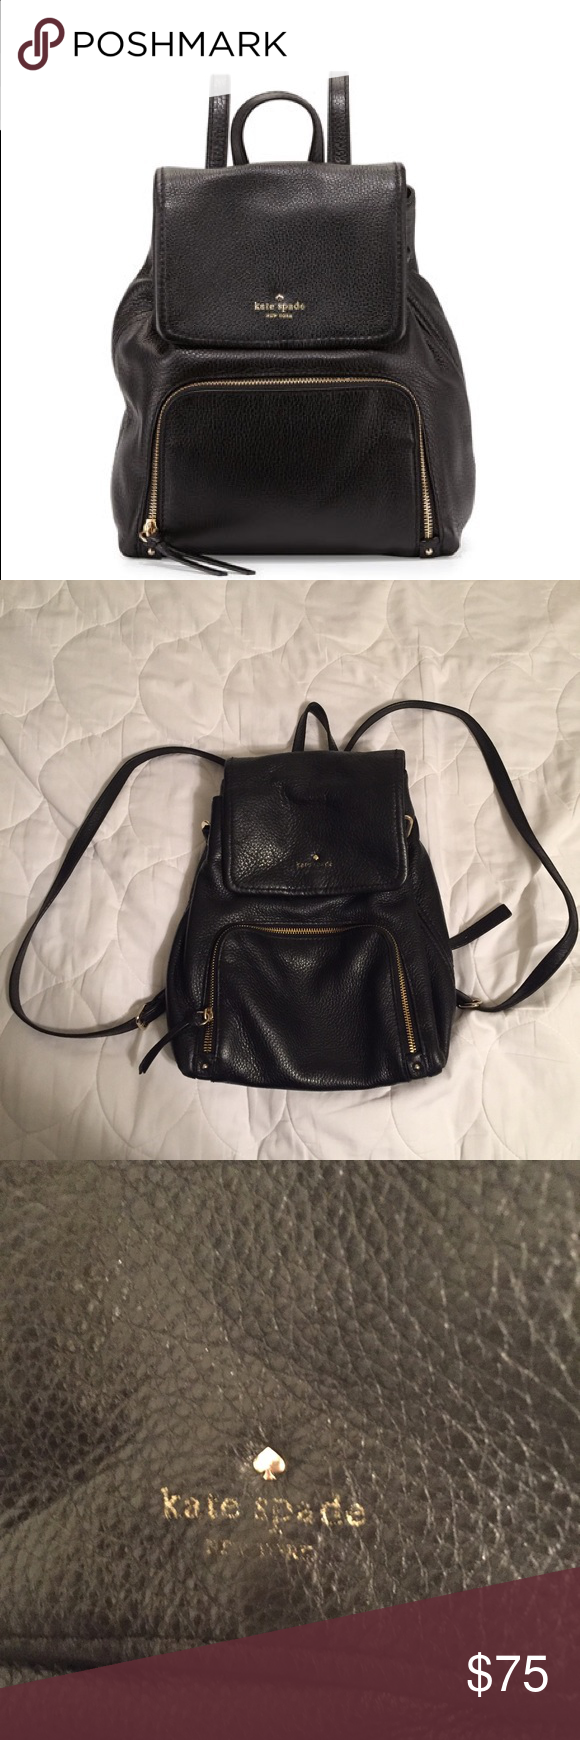 """$348 Kate Spade Cobble Hill Charley leather bag Purchased for $348 from Bloomingdales years ago. Very worn. Kate Spade logo is heavily faded, inside is darkened from wear. Gold metal pieces came loose from the sides, can probably be an easy fix. Please ask for more photos if you want to see a specific part. **NO TRADES** 29"""" adjustable drop length. 10.7"""" h, 9.4"""" w, 5.9"""" d. kate spade Bags Backpacks"""